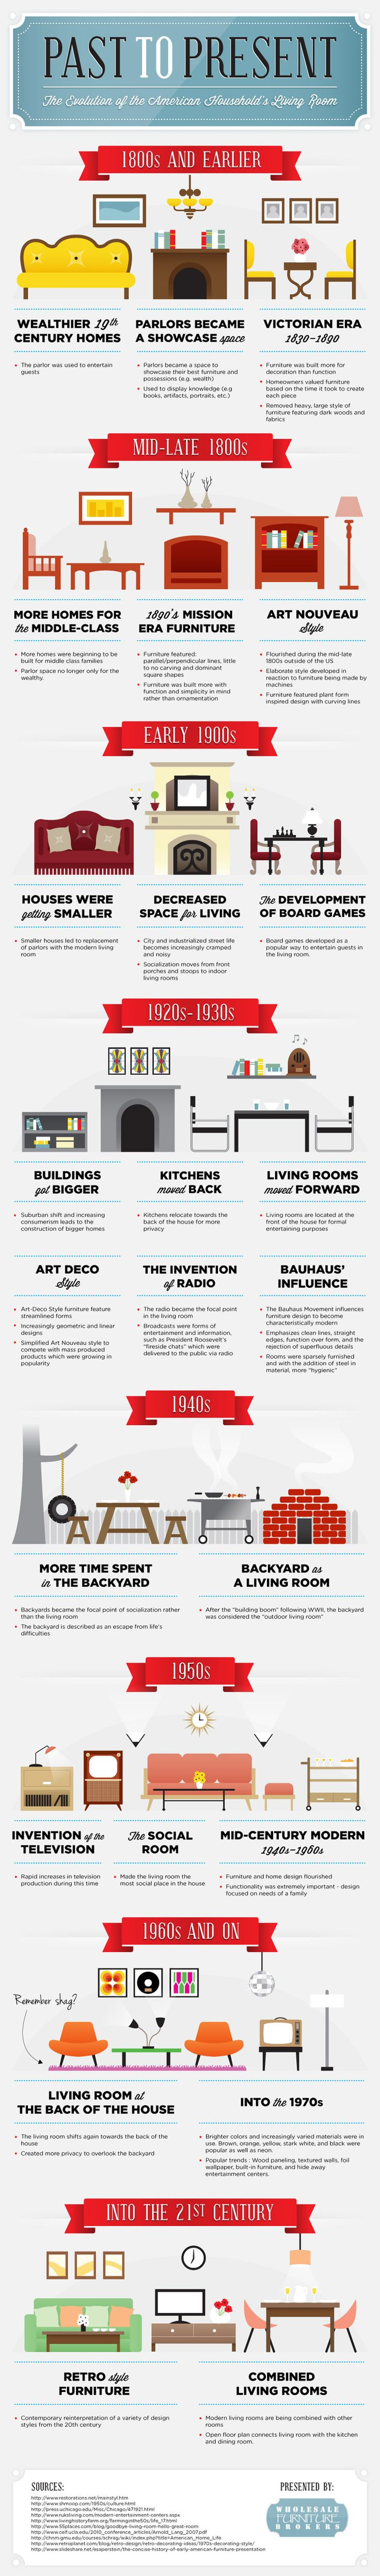 25 best ideas about 1800s home on pinterest grand ca for History of interior design